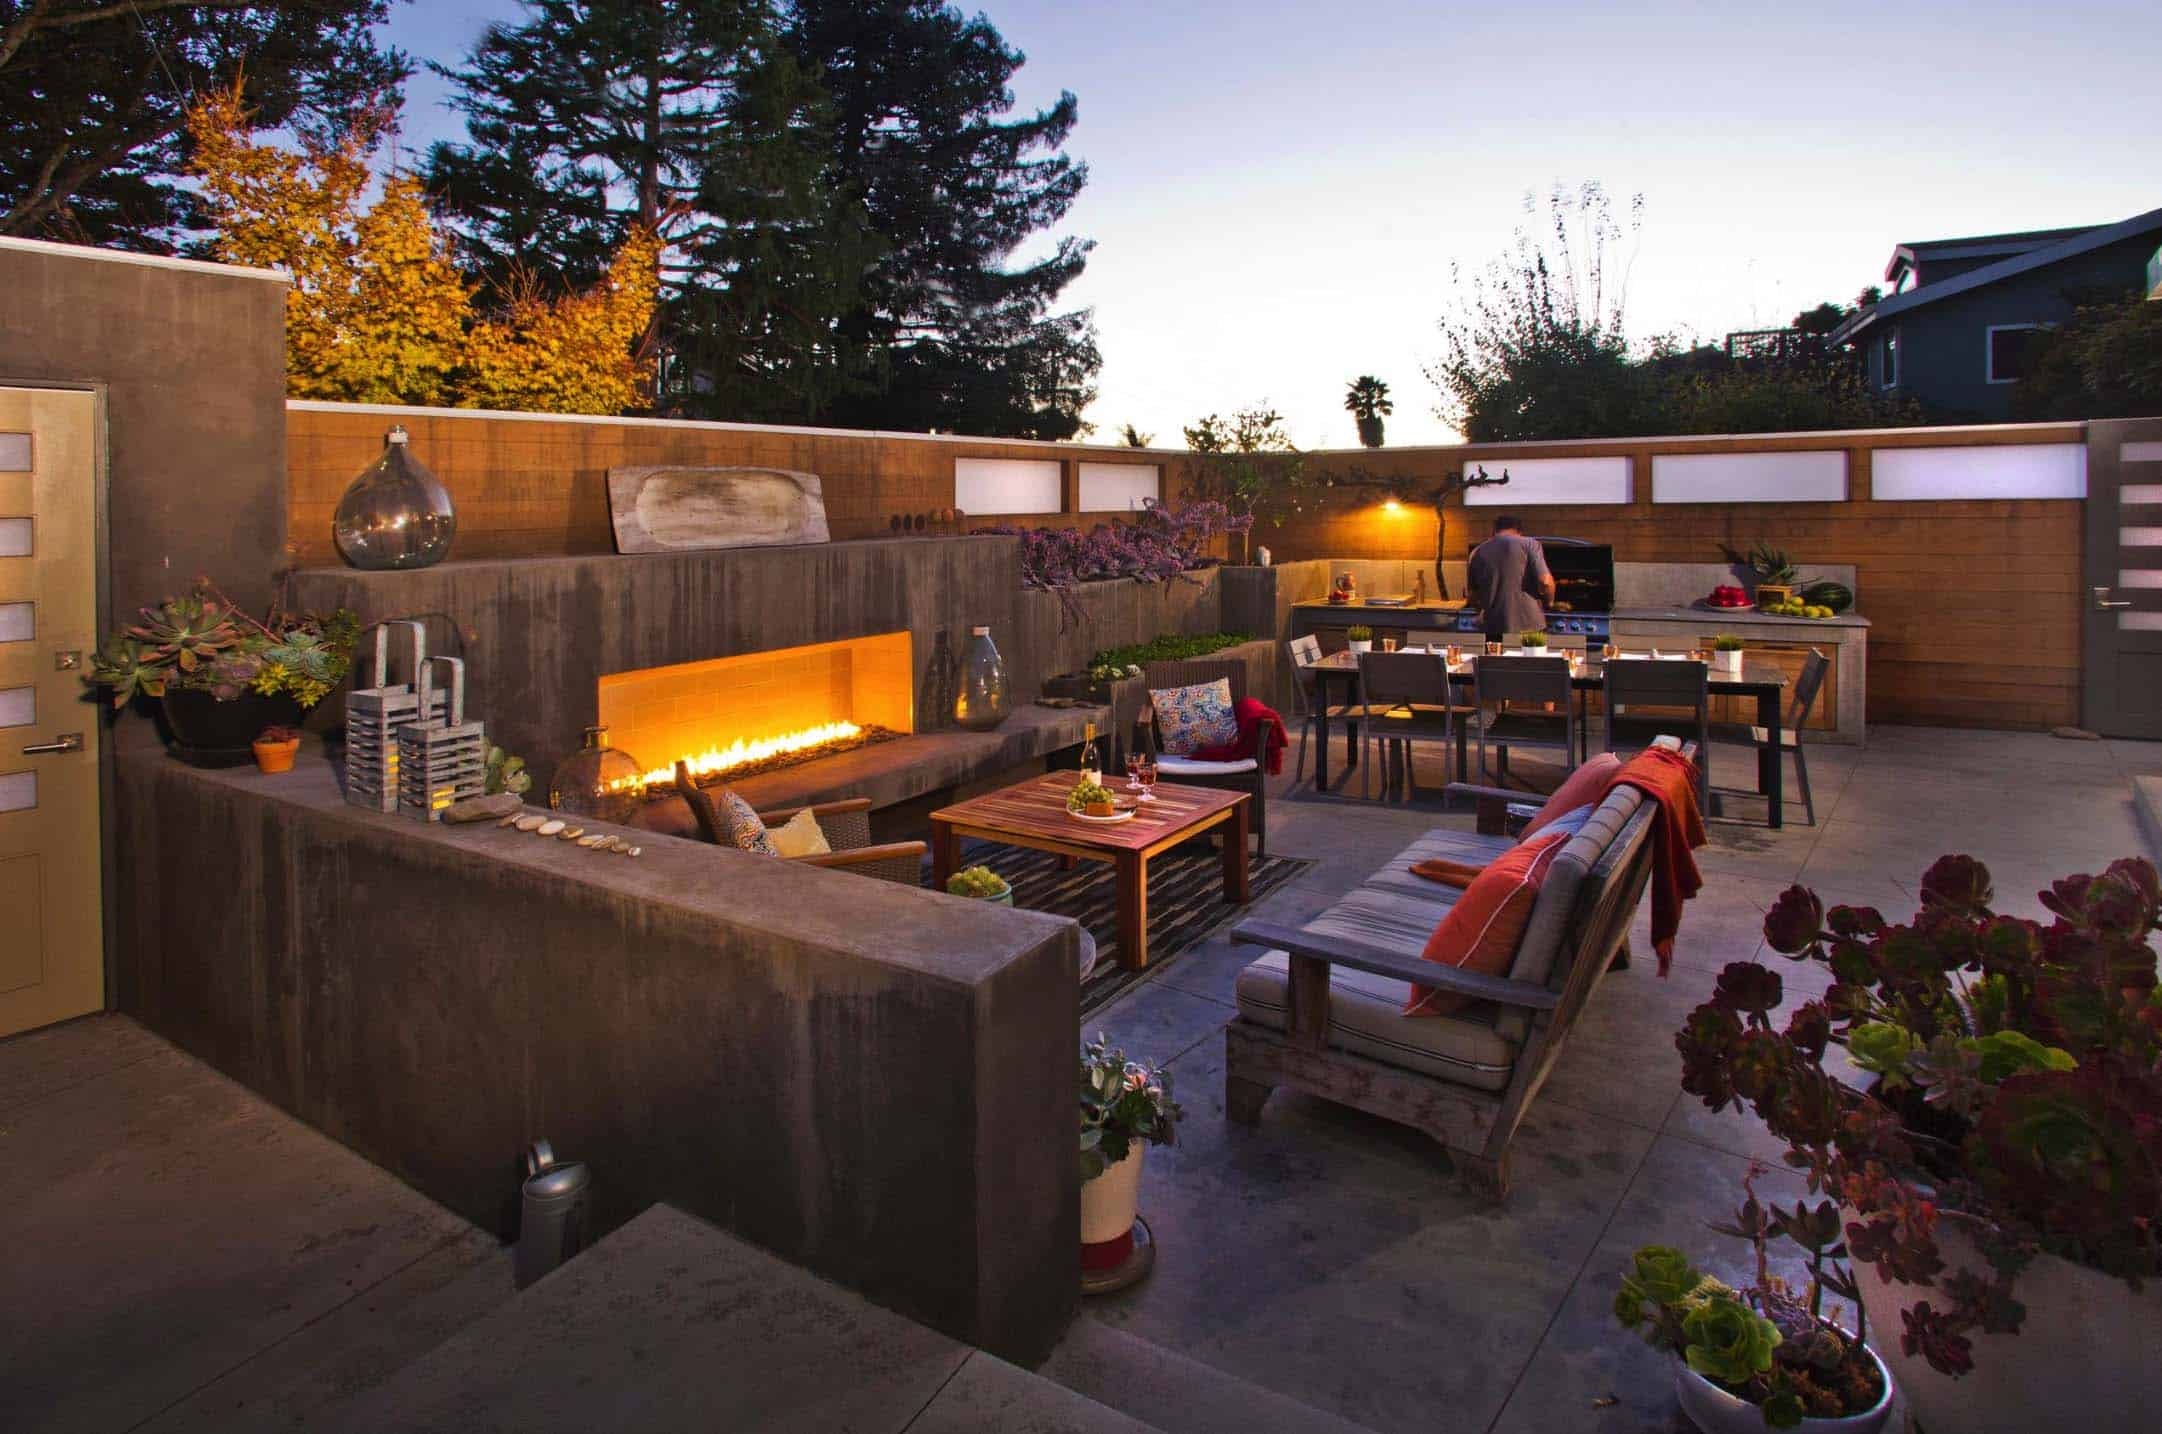 35 Brilliant and inspiring patio ideas for outdoor living ... on Garden Entertainment Area Ideas id=26008